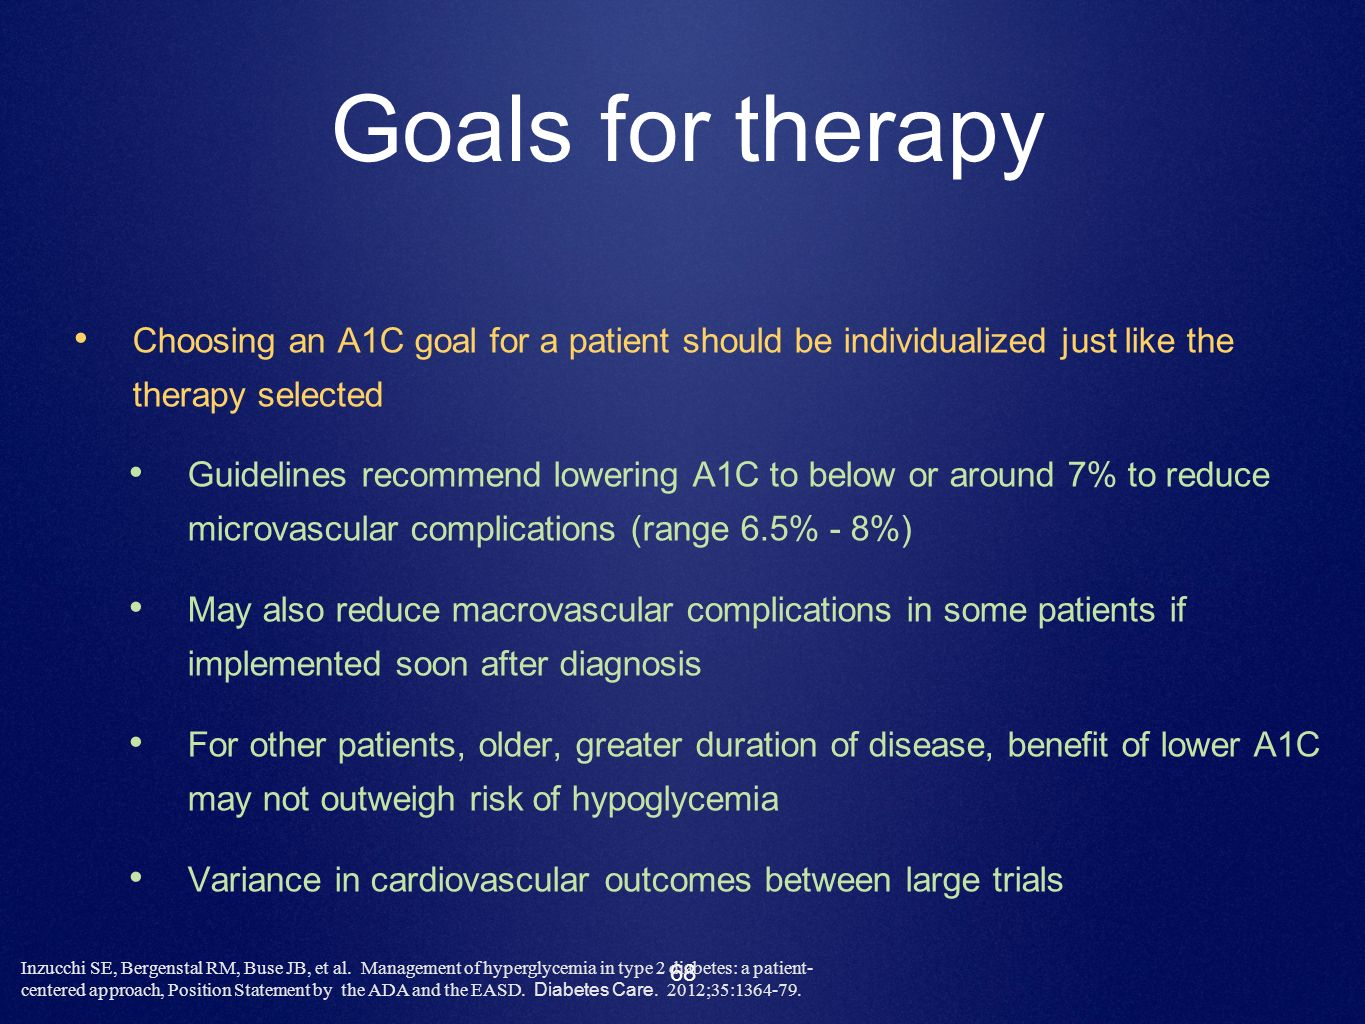 Goals for therapy Choosing an A1C goal for a patient should be individualized just like the therapy selected.